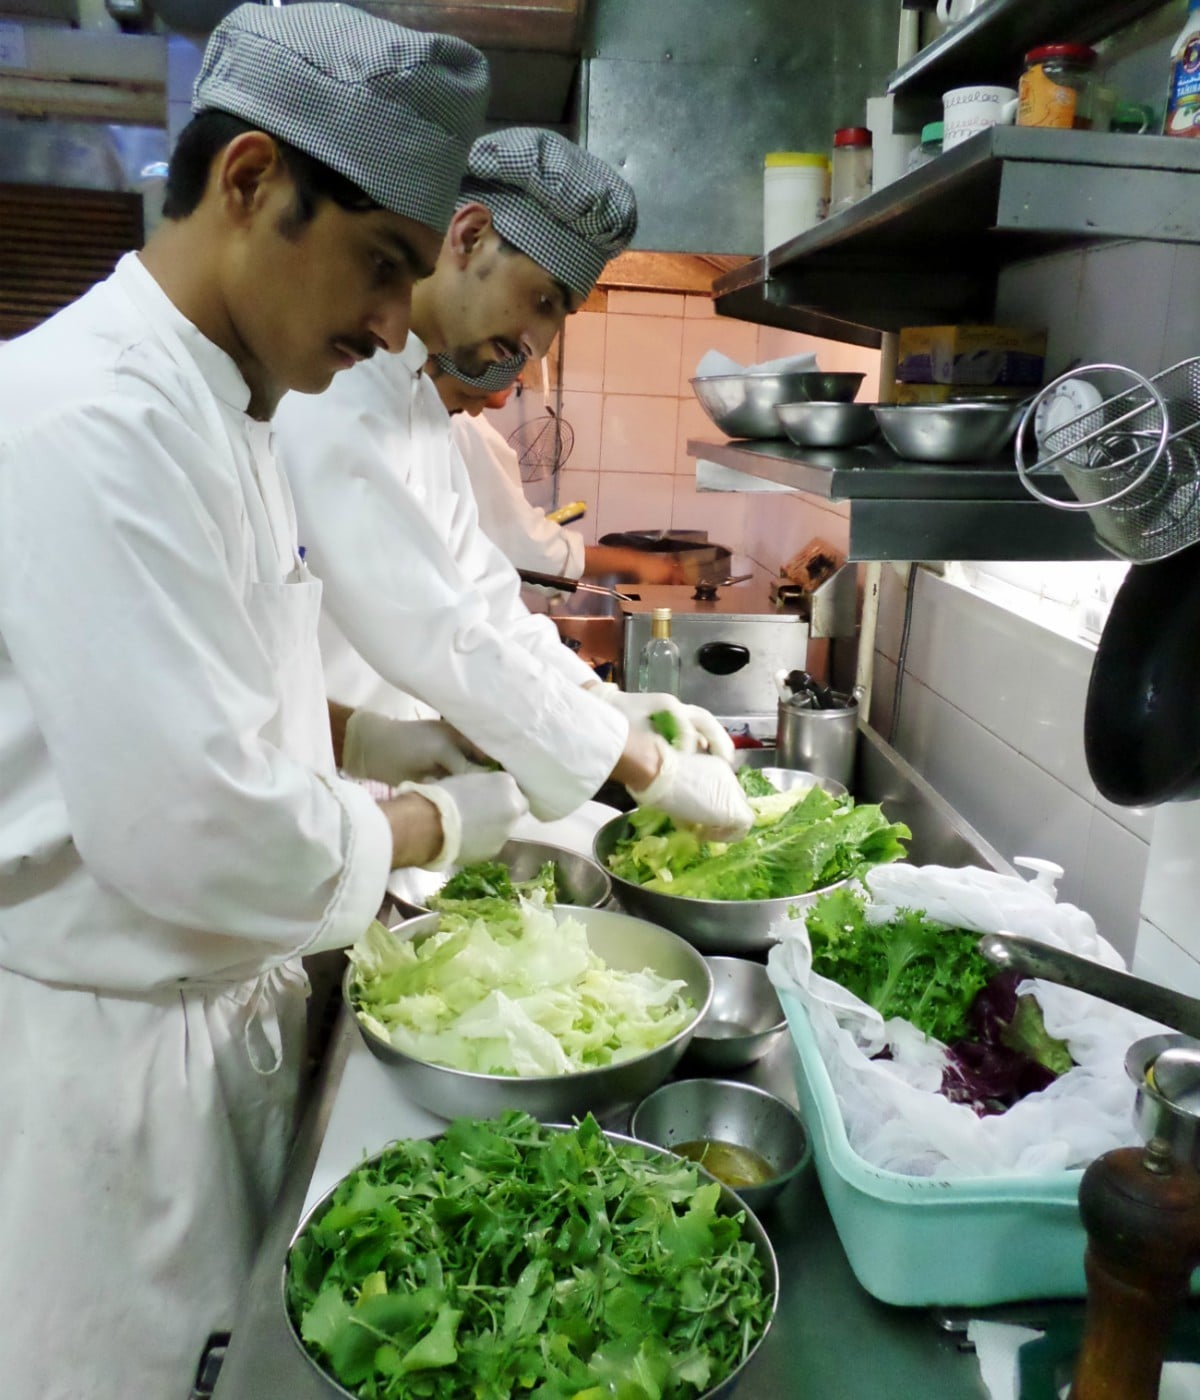 An average day in Okra kitchen starts at 8 in the morning -- it's when staff is starting preparatory services, fetching fresh vegetables and poultry goods